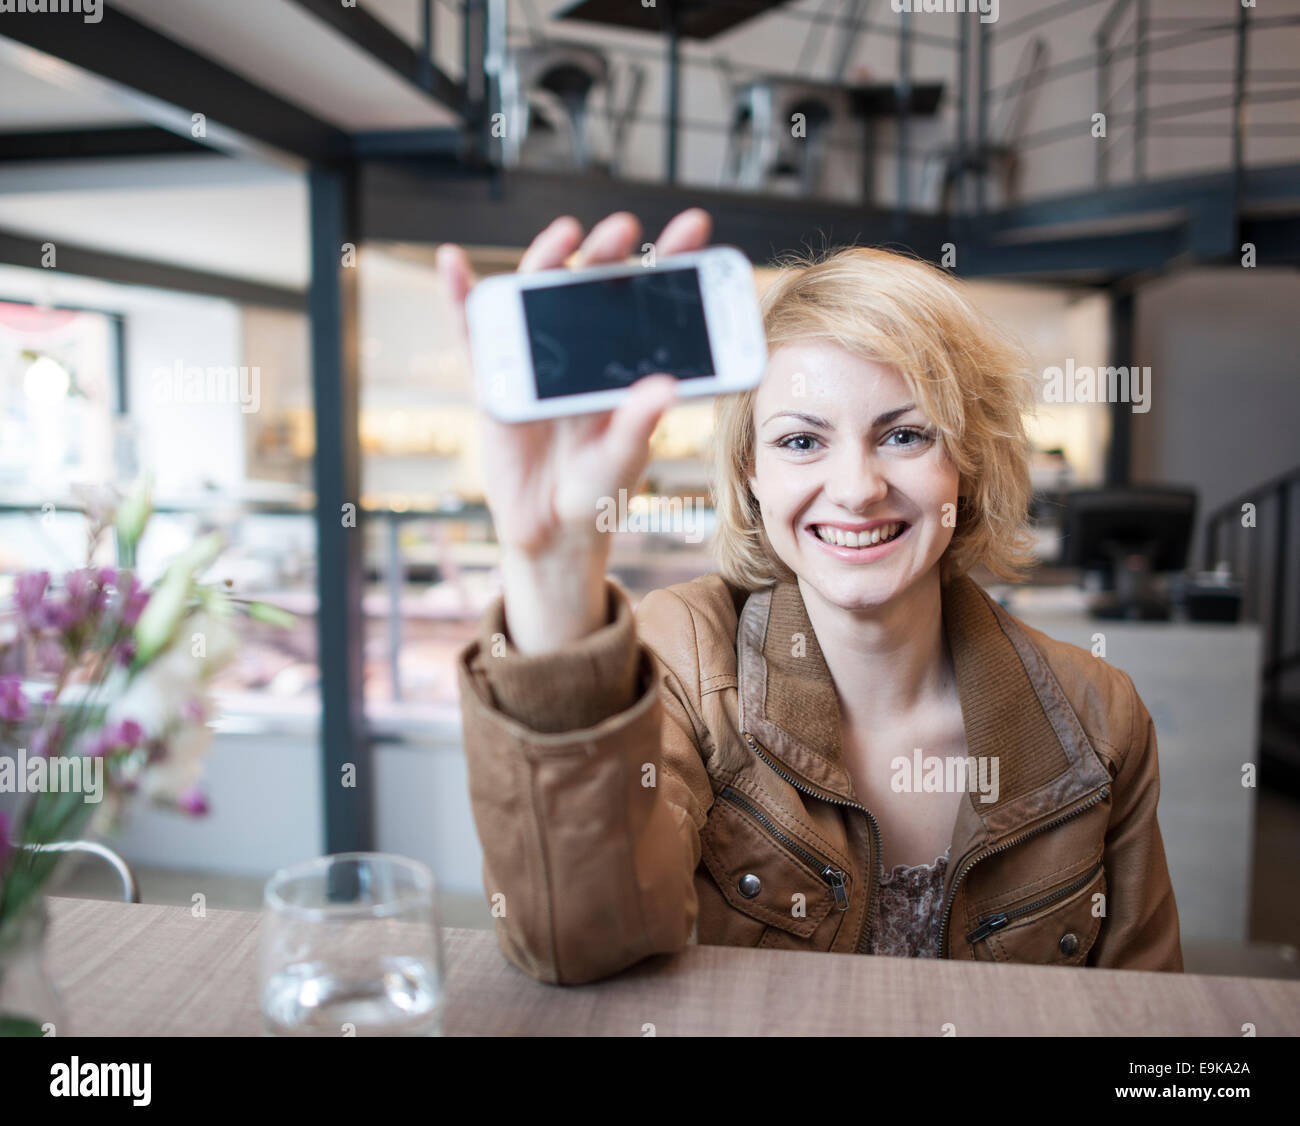 Portrait of smiling young woman displaying cell phone in cafe - Stock Image